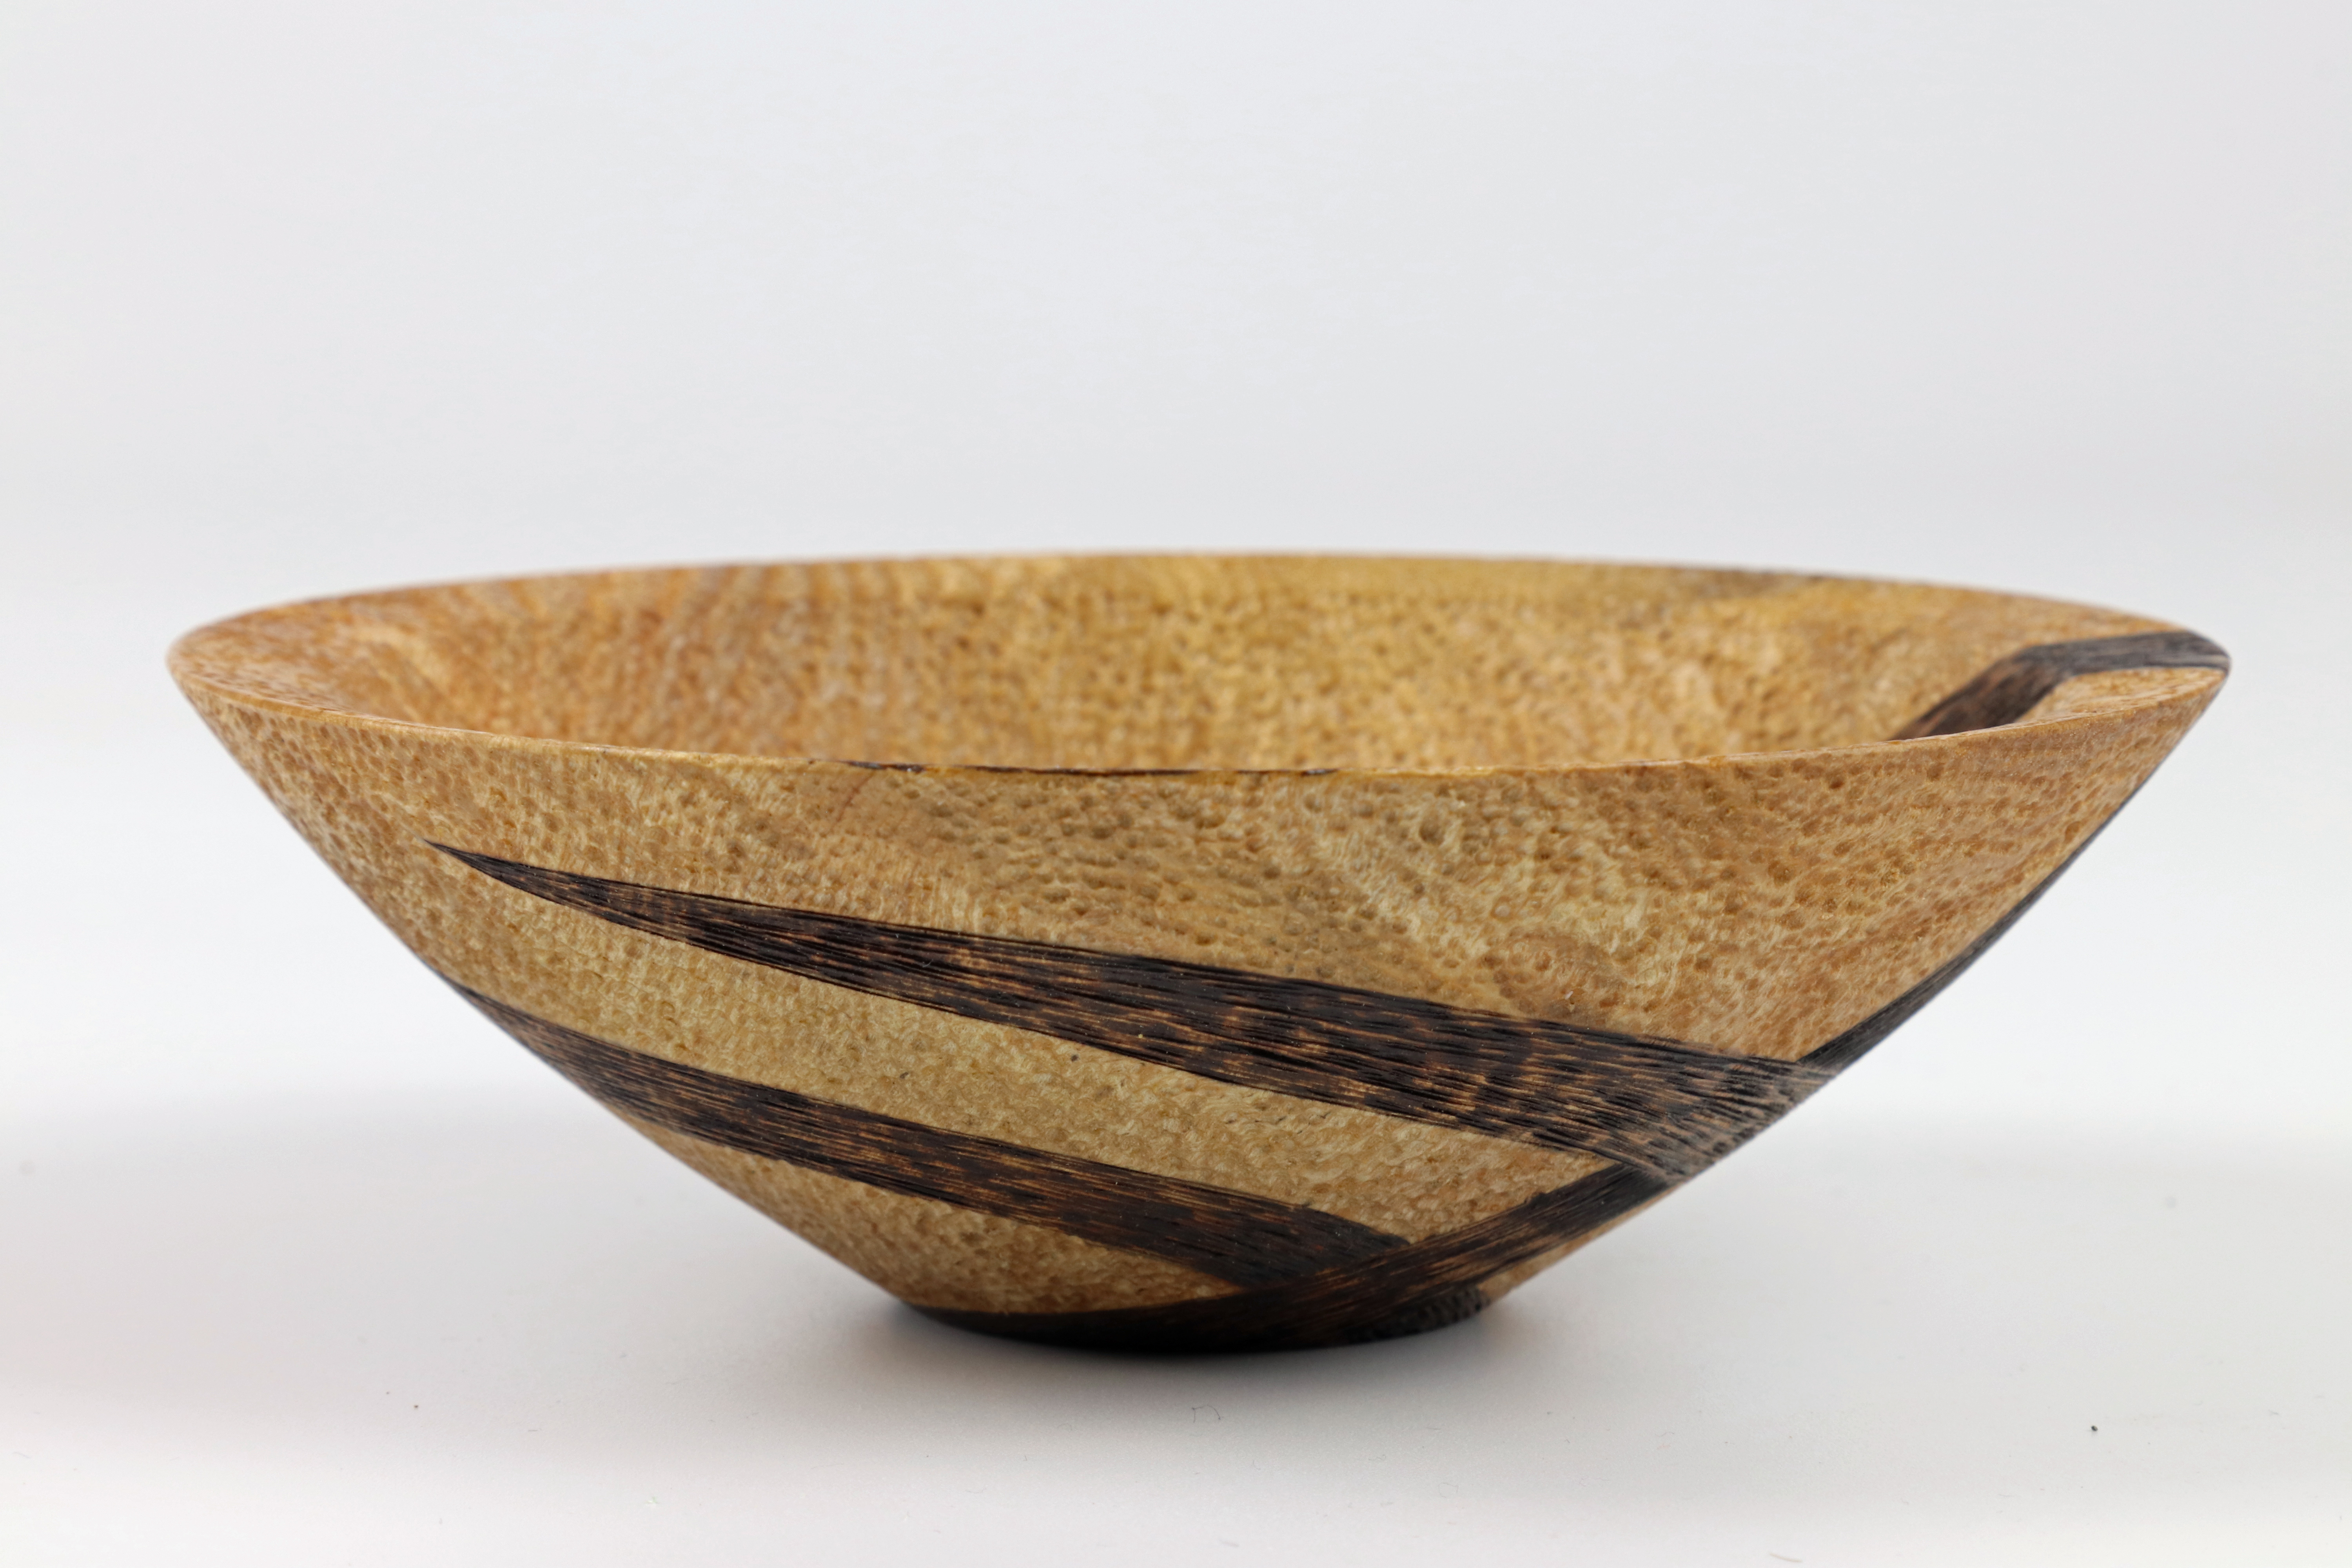 Lot 105 - Sharon Doughtie (USA) decorated ash bowl 5x14cm. Signed